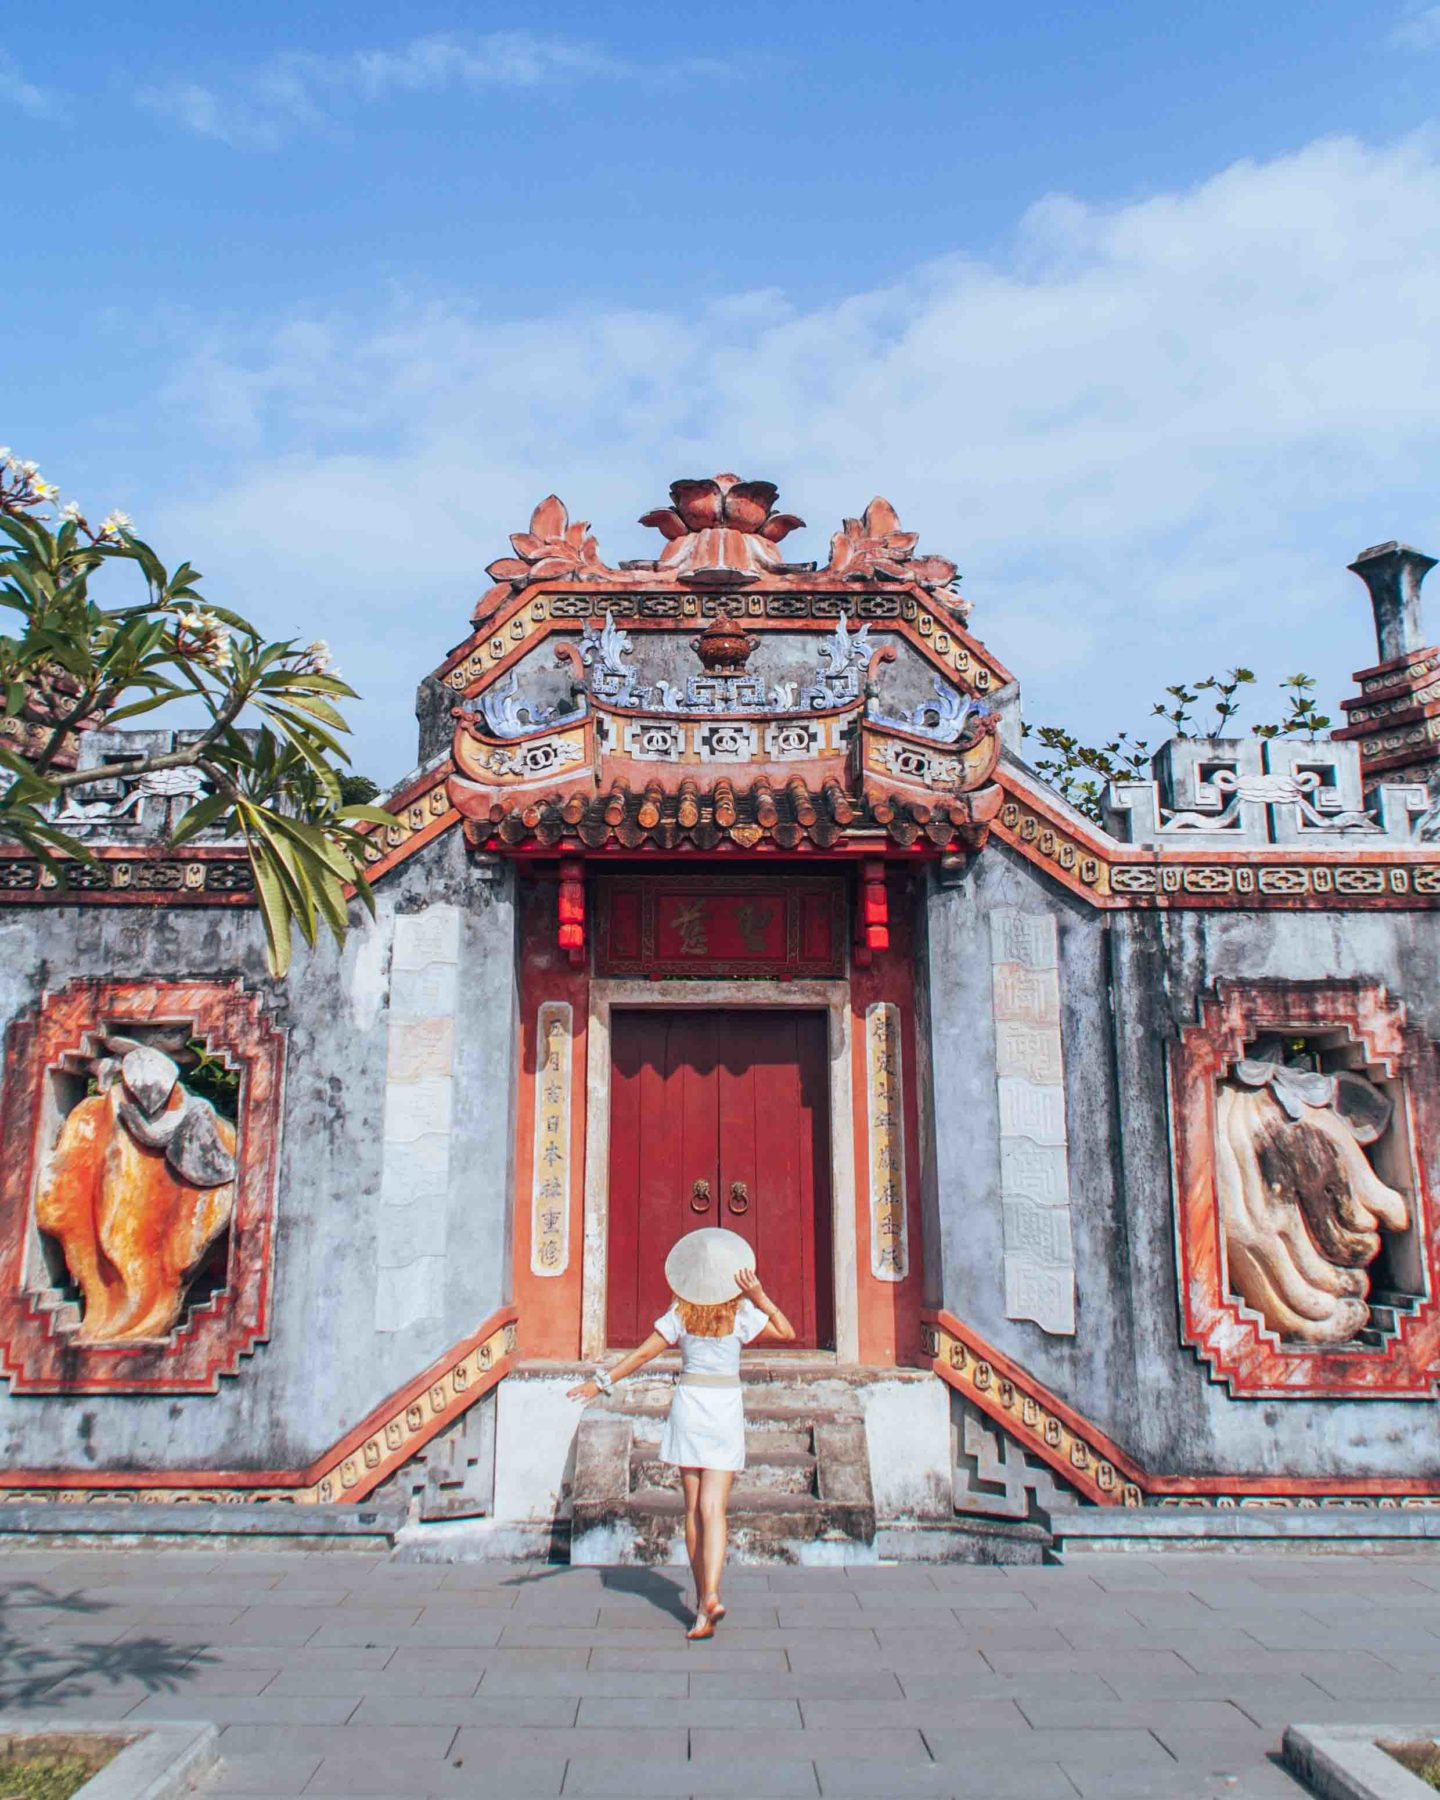 Follow me to the Ba Mu temple gate of Hoi An, Vietnam